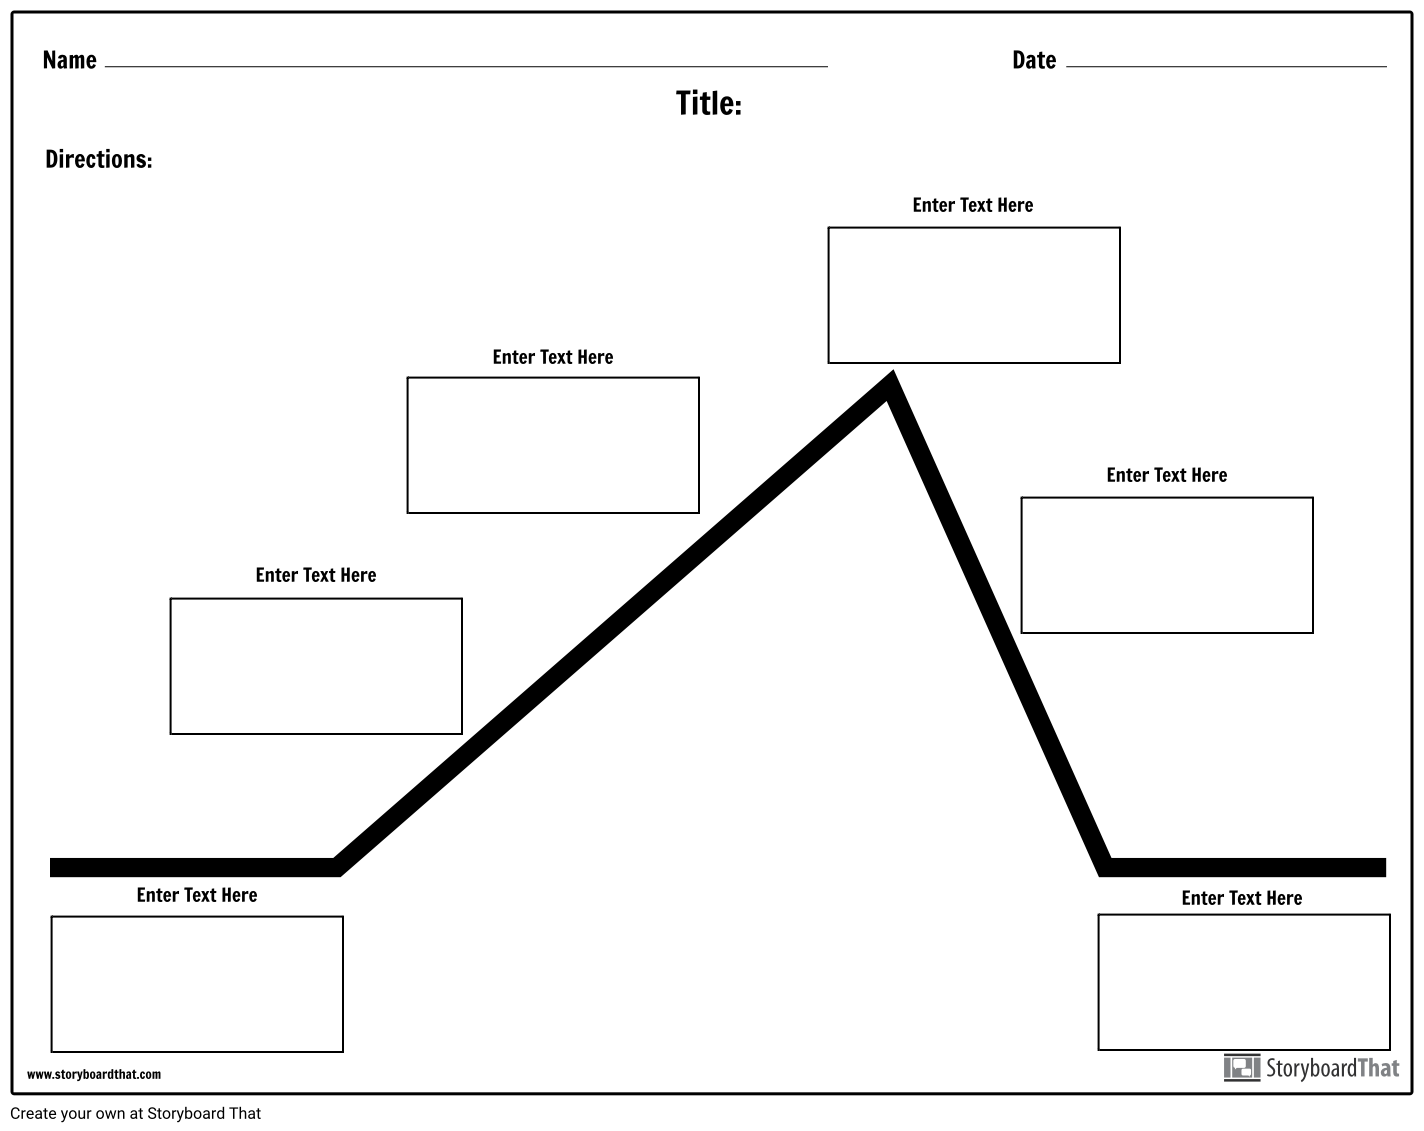 hight resolution of Use Storyboard That's worksheet maker to create Plot Diagram Worksheets!  Use one of the many templates to…   Plot diagram